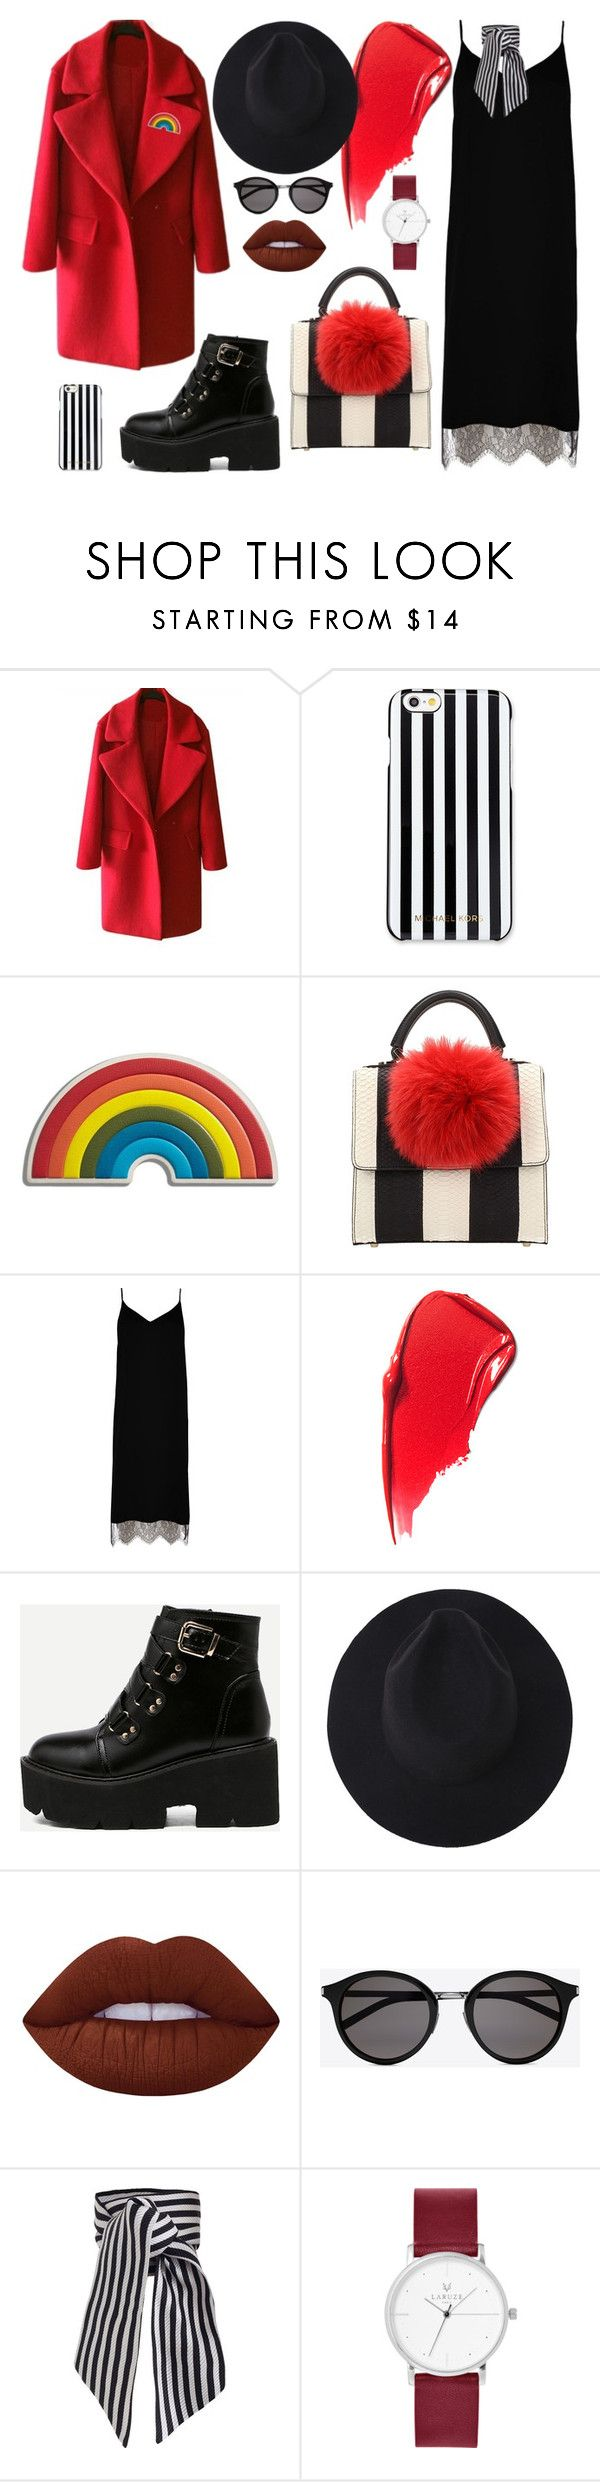 Française by ladyion on Polyvore featuring мода, River Island, Les Petits Joueurs, MICHAEL Michael Kors, Zimmermann, Yves Saint Laurent, Anya Hindmarch and Lime Crime